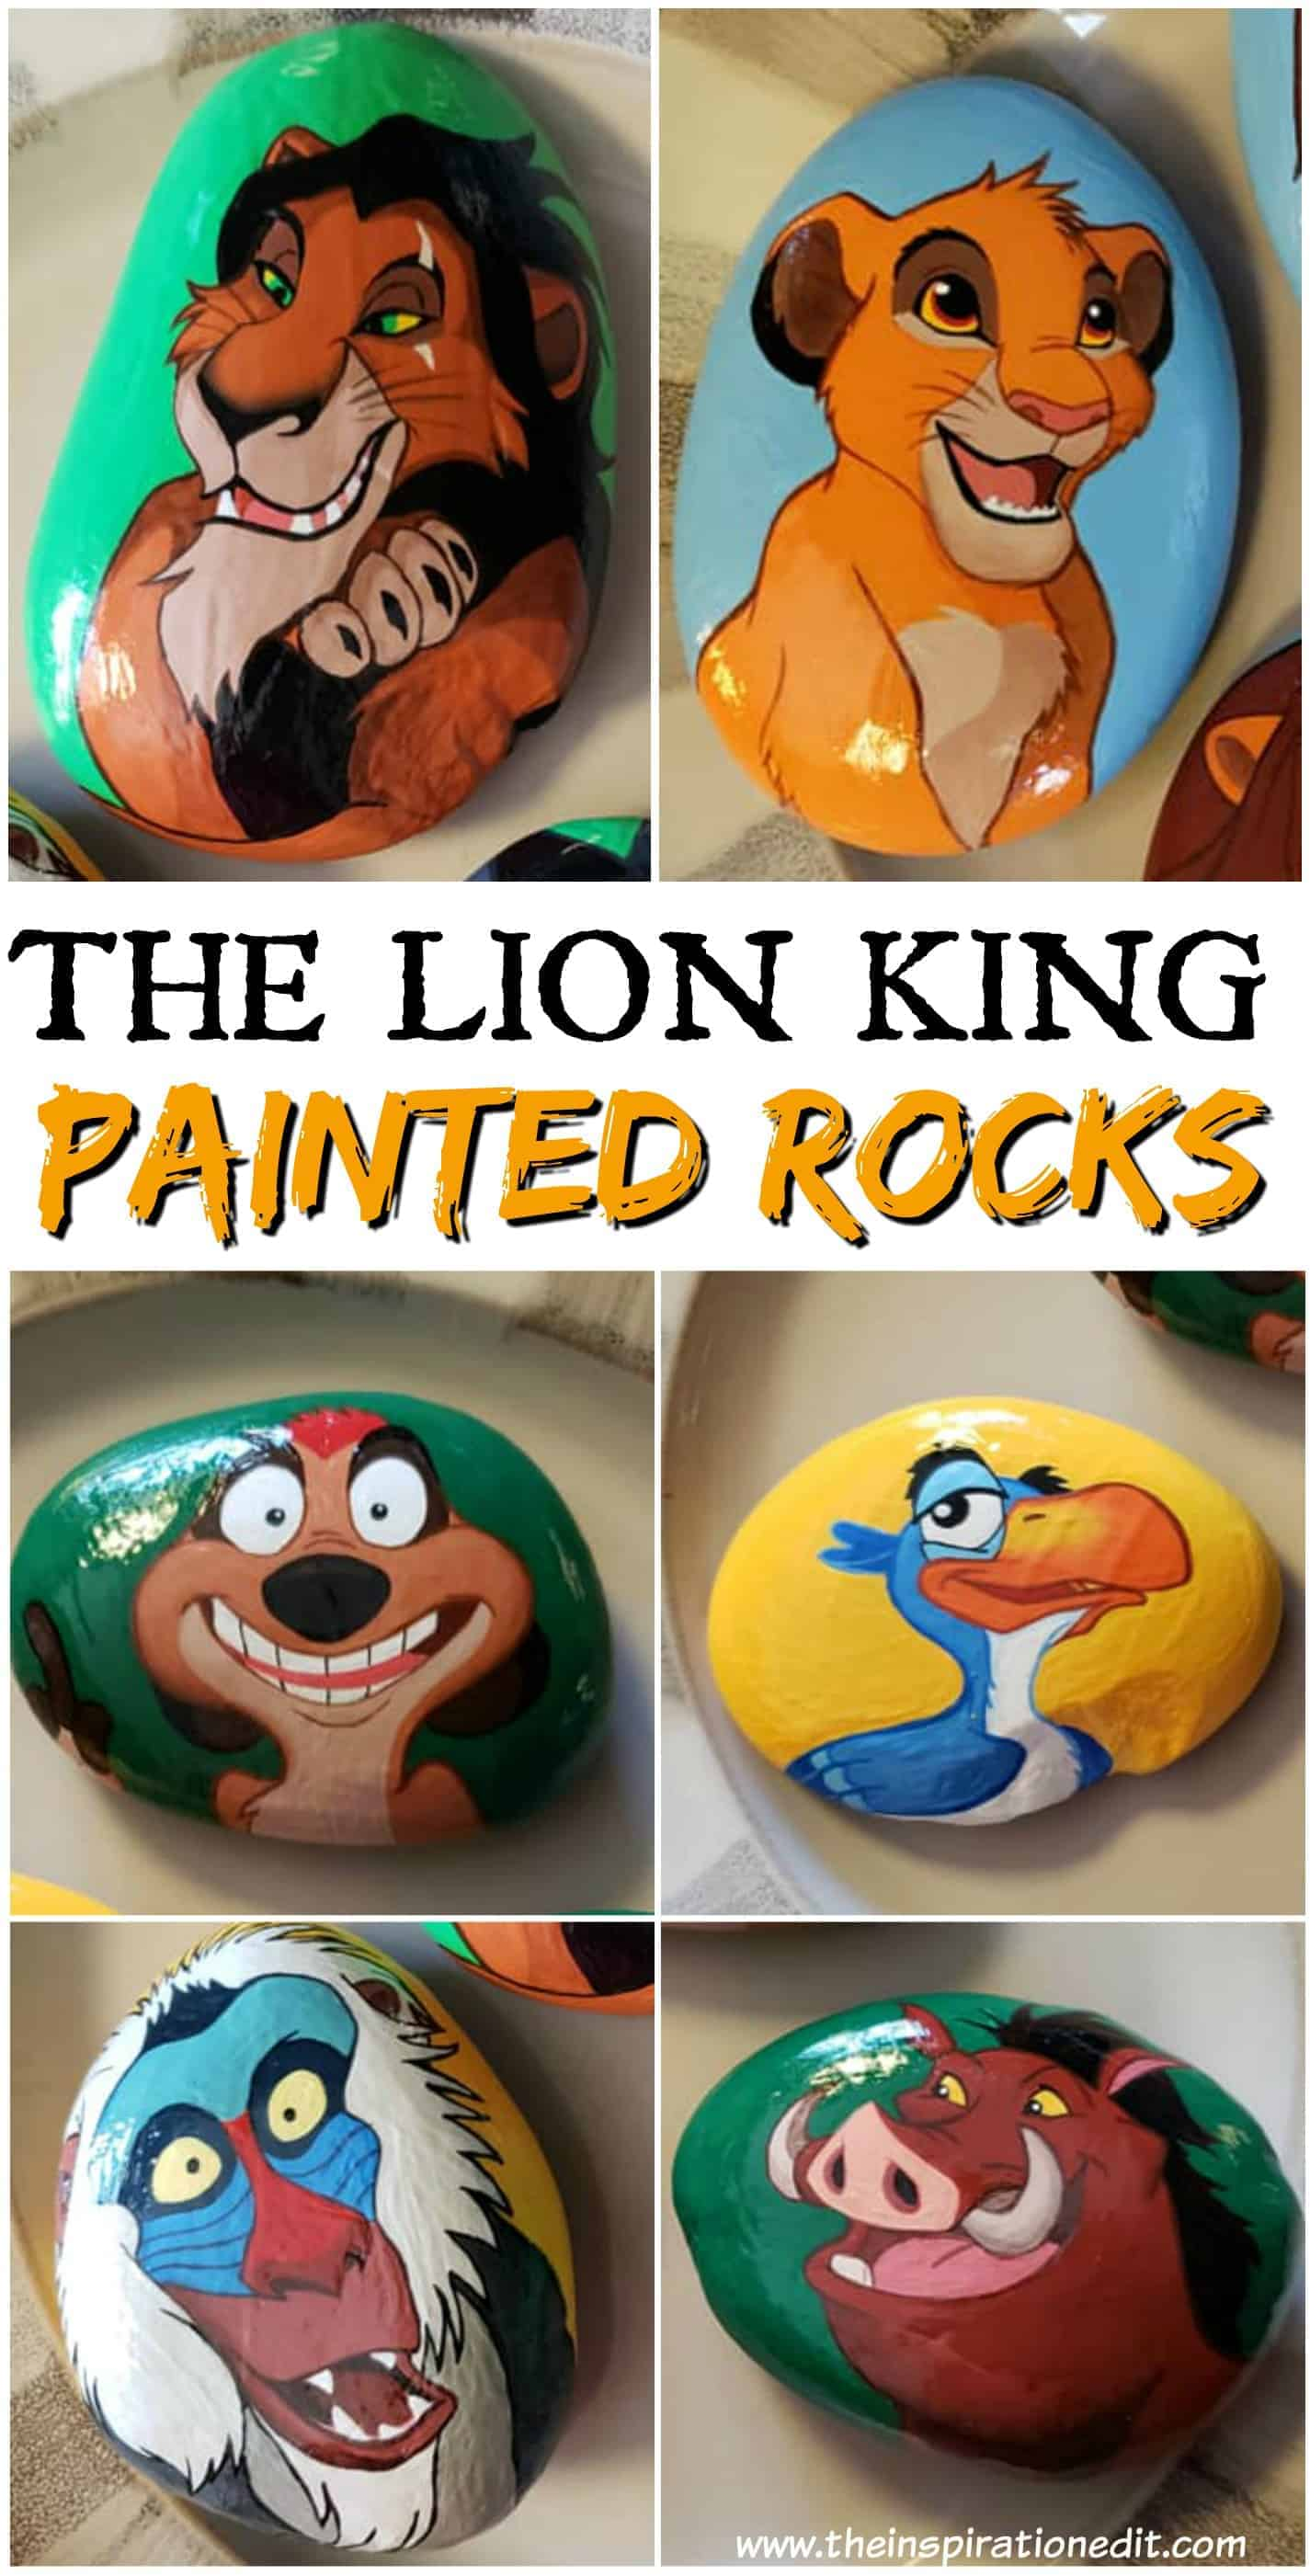 ec638d84 Lion King Painted Rock Stones By Carly S · The Inspiration Edit